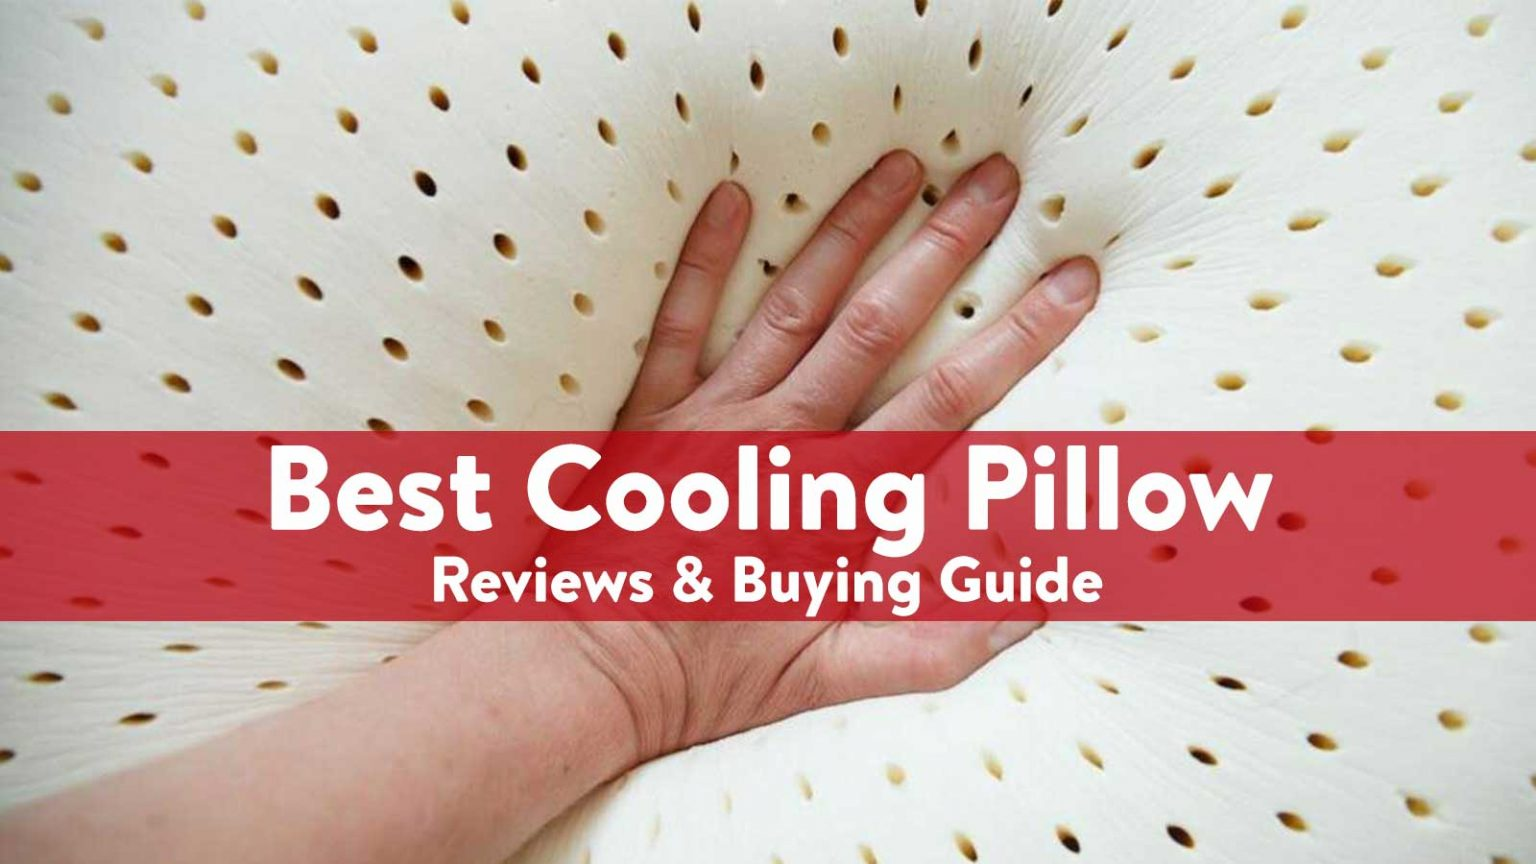 Best Cooling Pillow